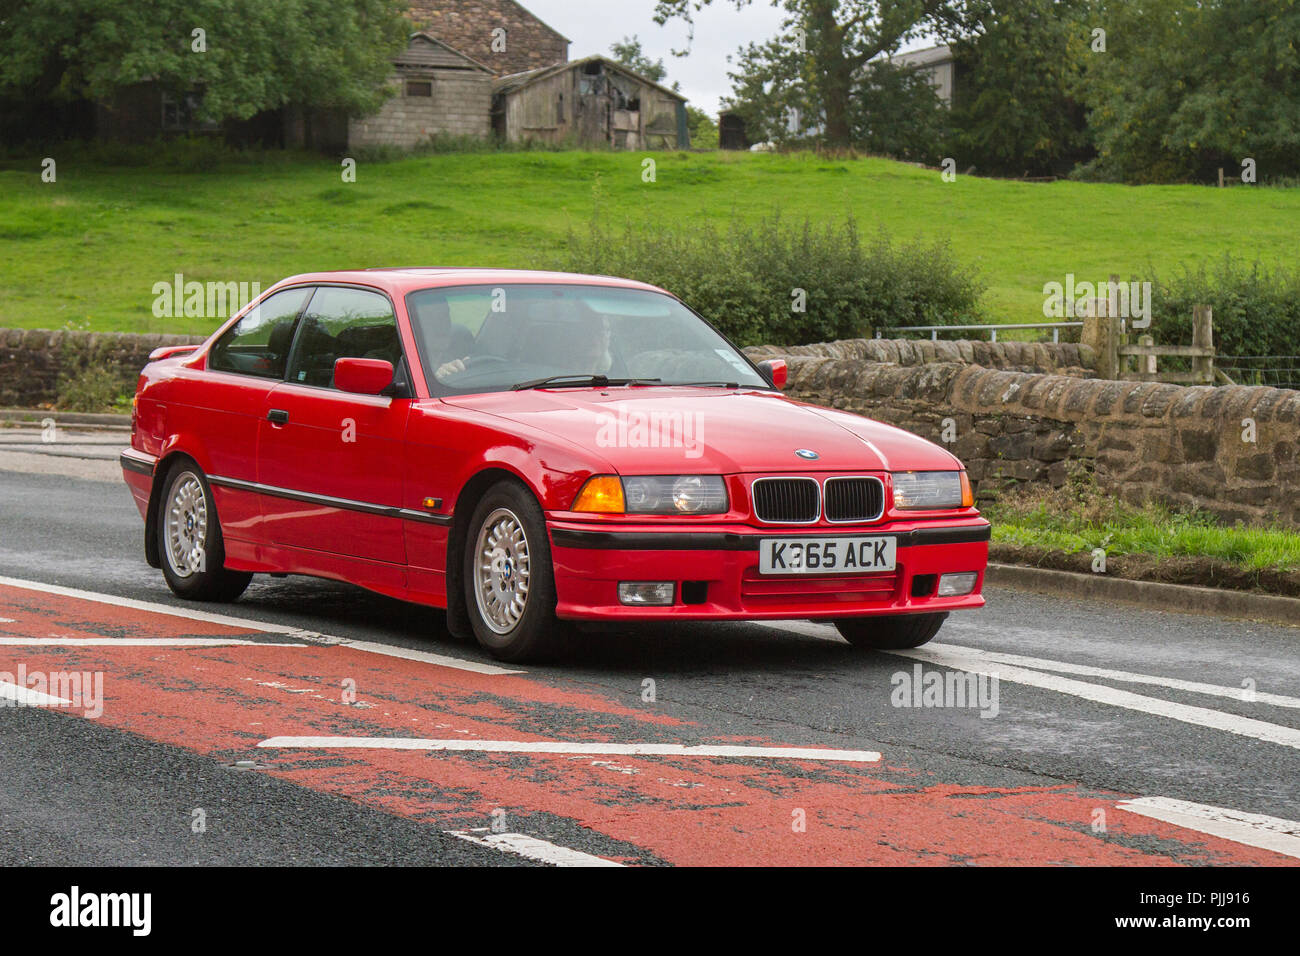 Red K365ACK 1993 BMW 318 I S Classic, vintage, veteran, cars of yesteryear, restored collectibles at Hoghton Tower Class Cars Rally, UK - Stock Image